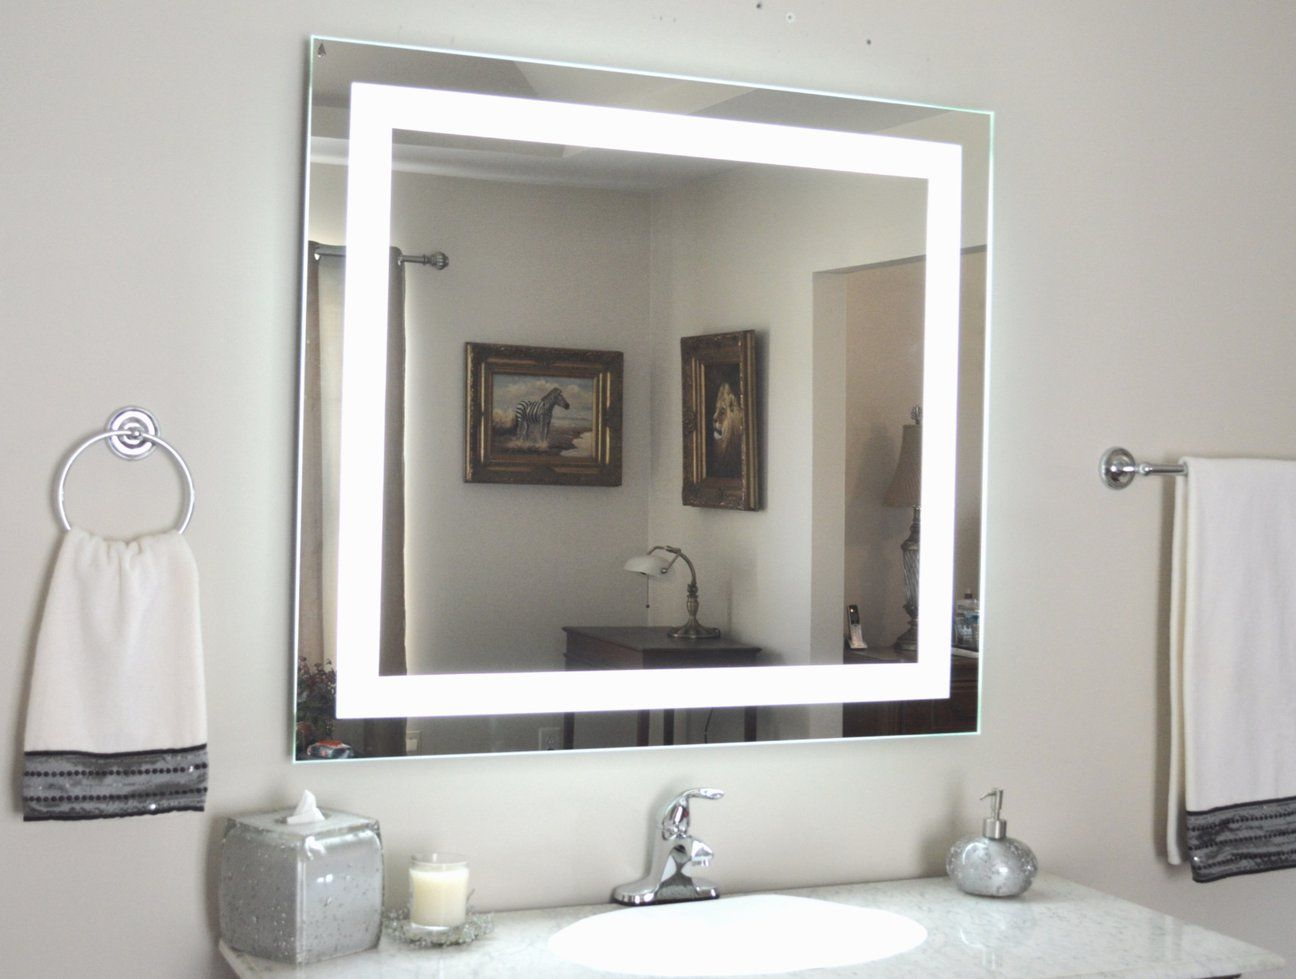 Front Lighted Led Bathroom Vanity Mirror 44 Wide X 36 Tall